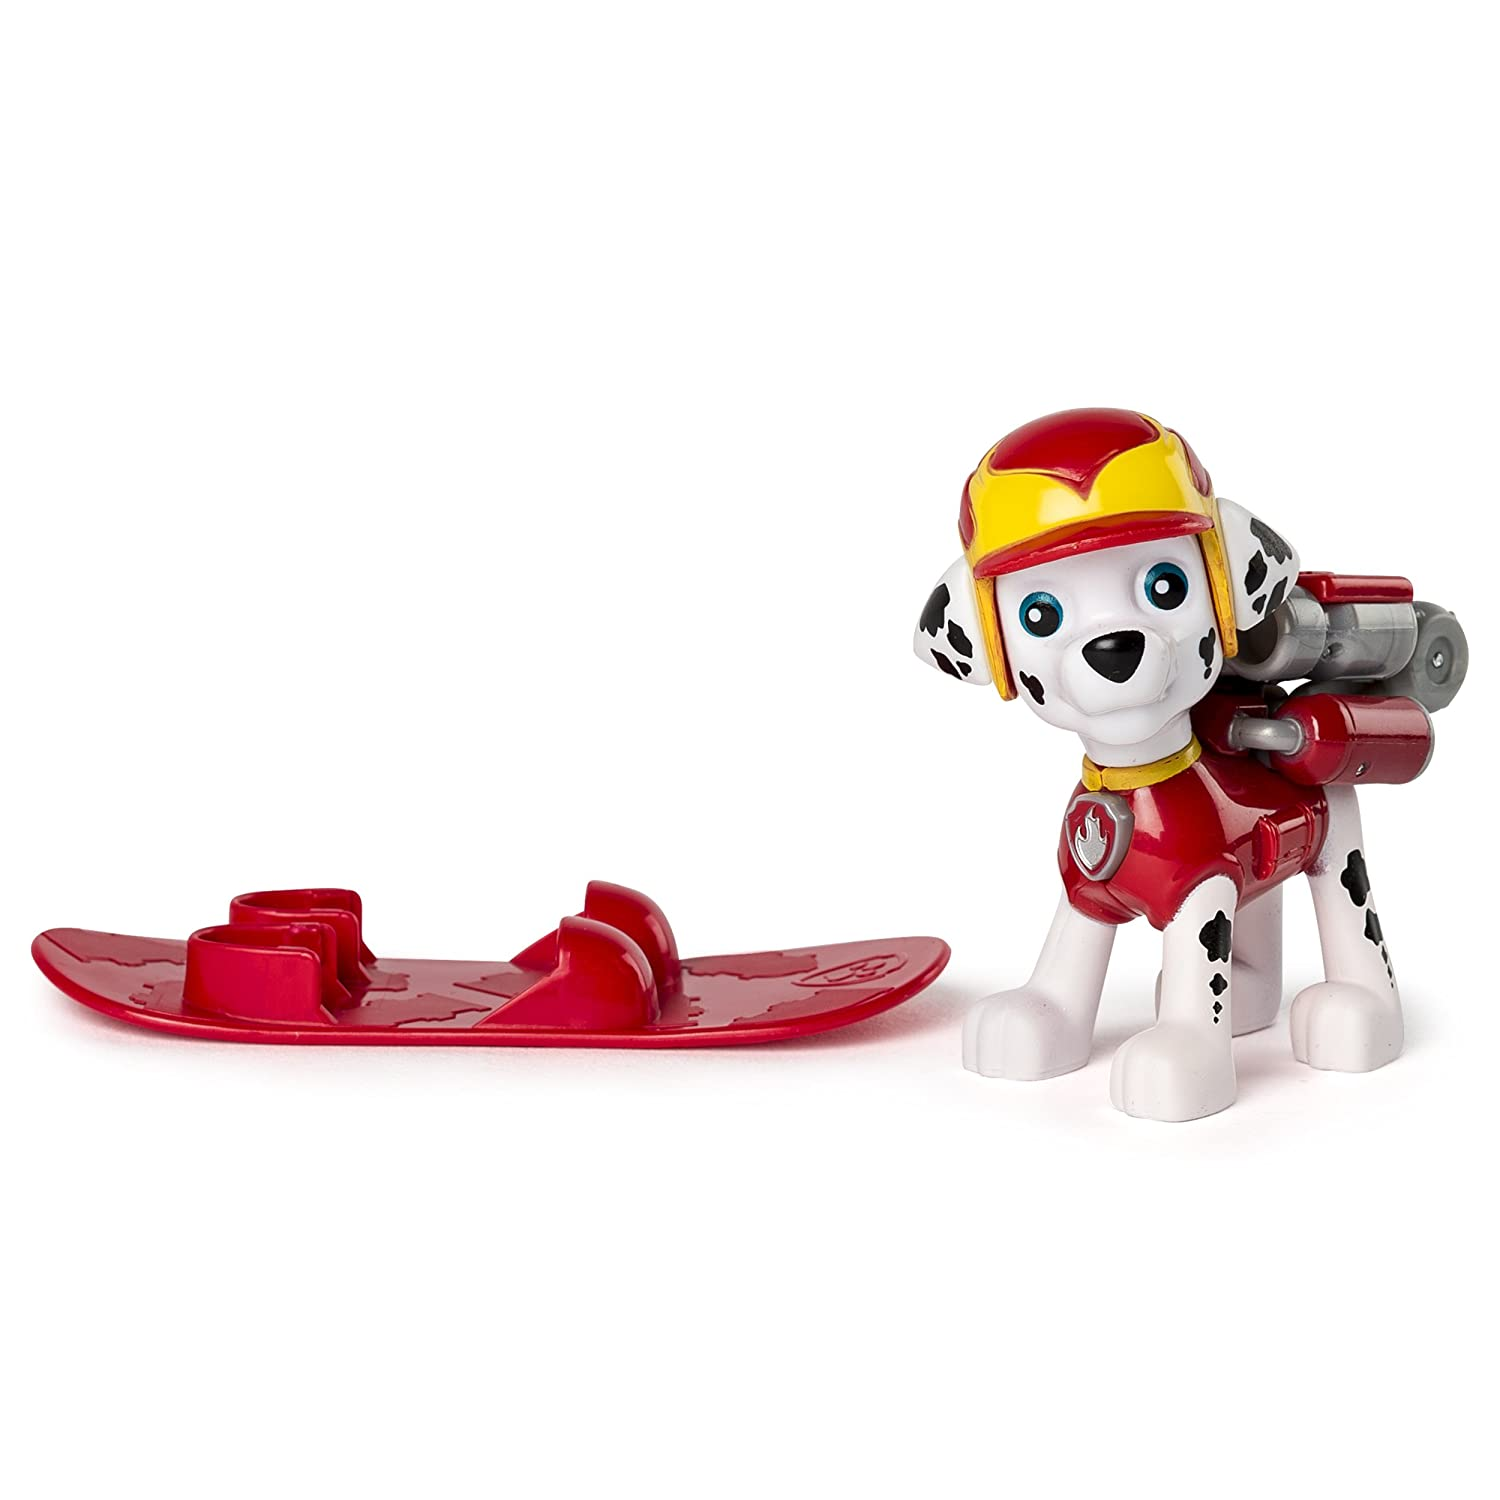 Amazon.com: Paw Patrol Winter Rescues Action Pack Pup, Snowboard Skye: Toys & Games